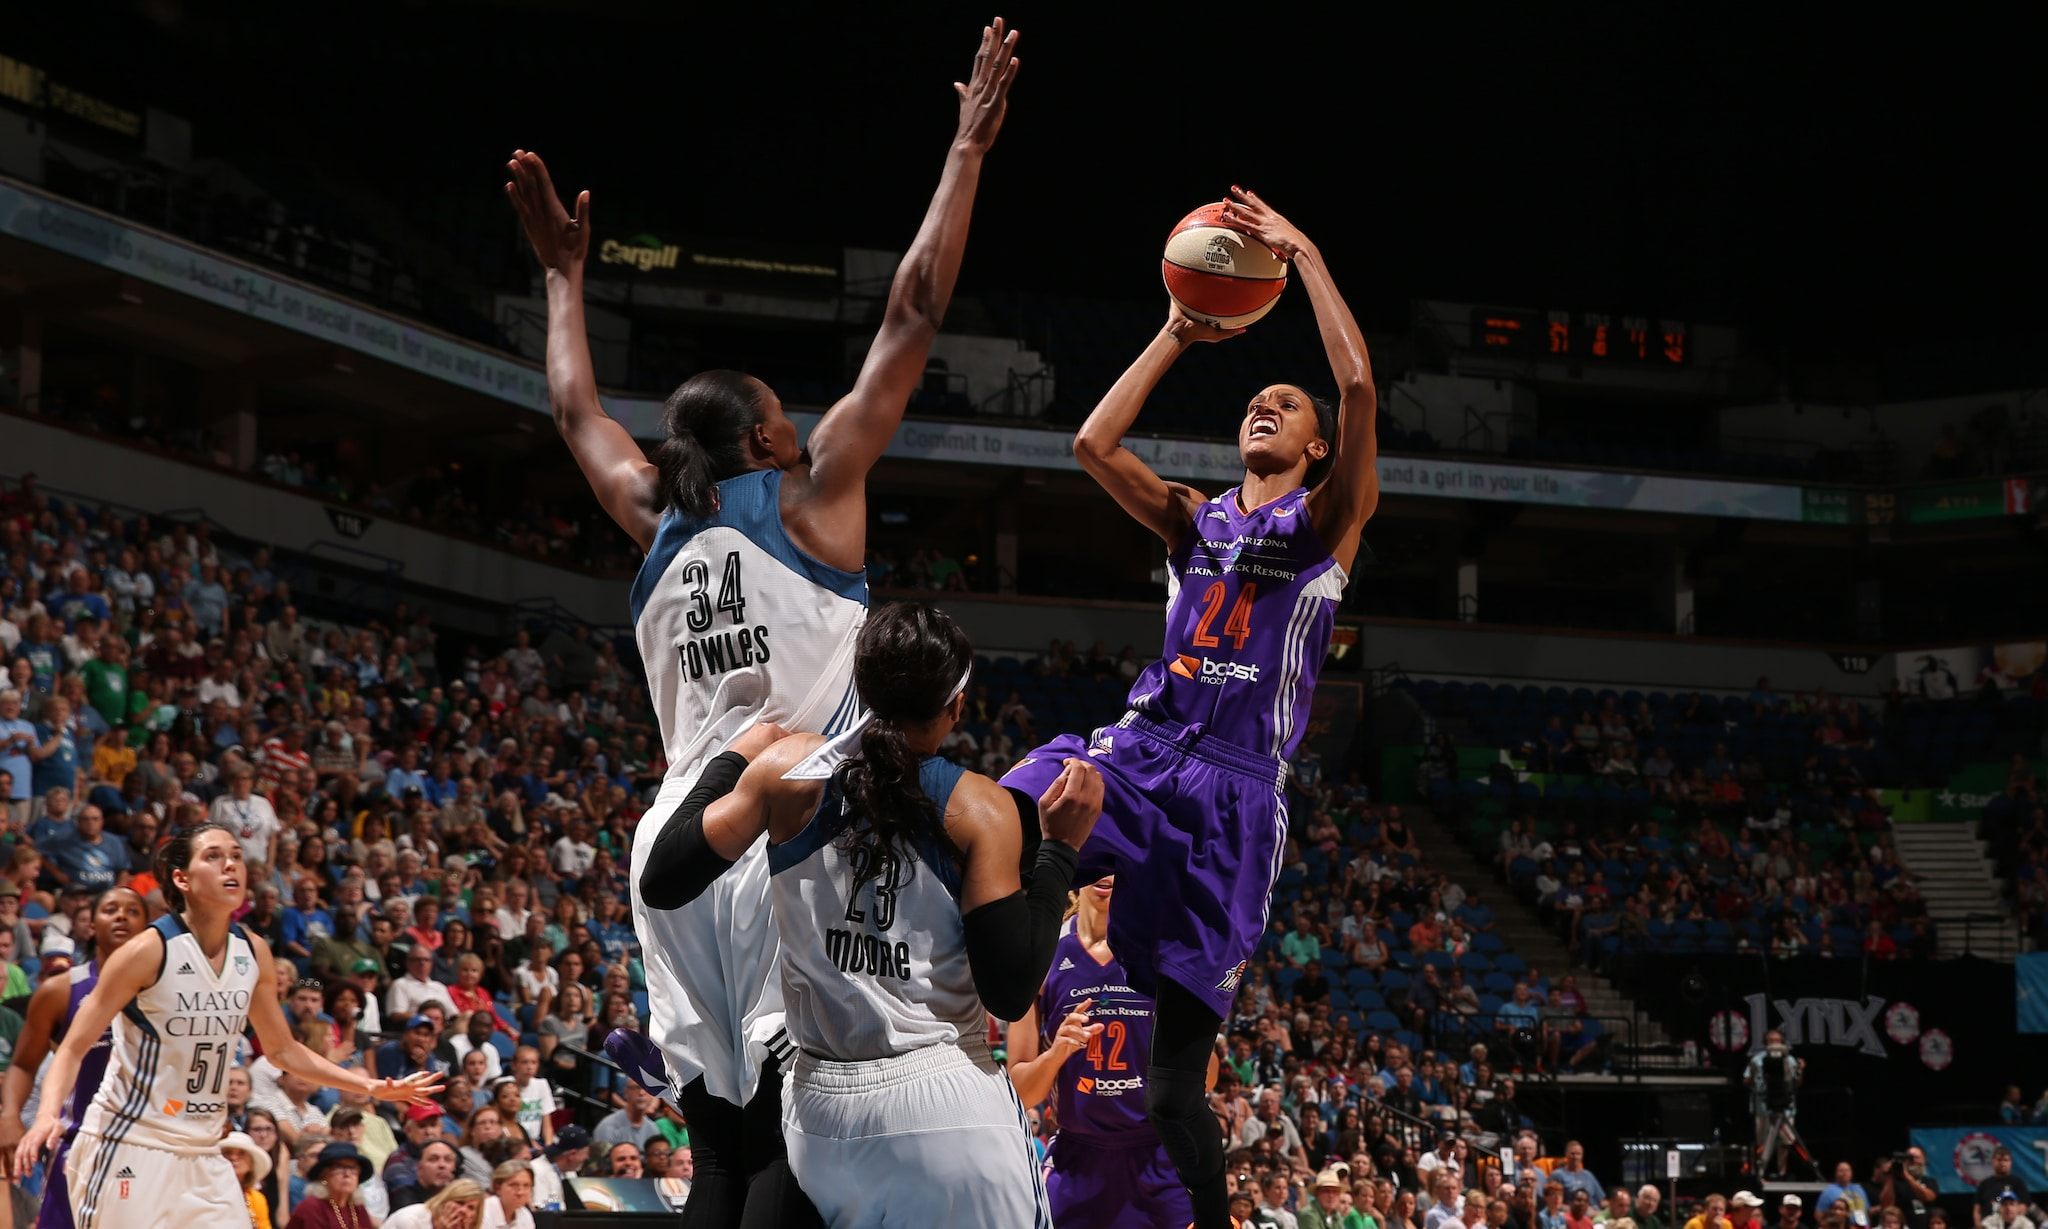 Mercury forward DeWanna Bonner entered Sunday night's game as the fifth-leading scorer in the league and finished with  15 points, six rebounds and four assists.